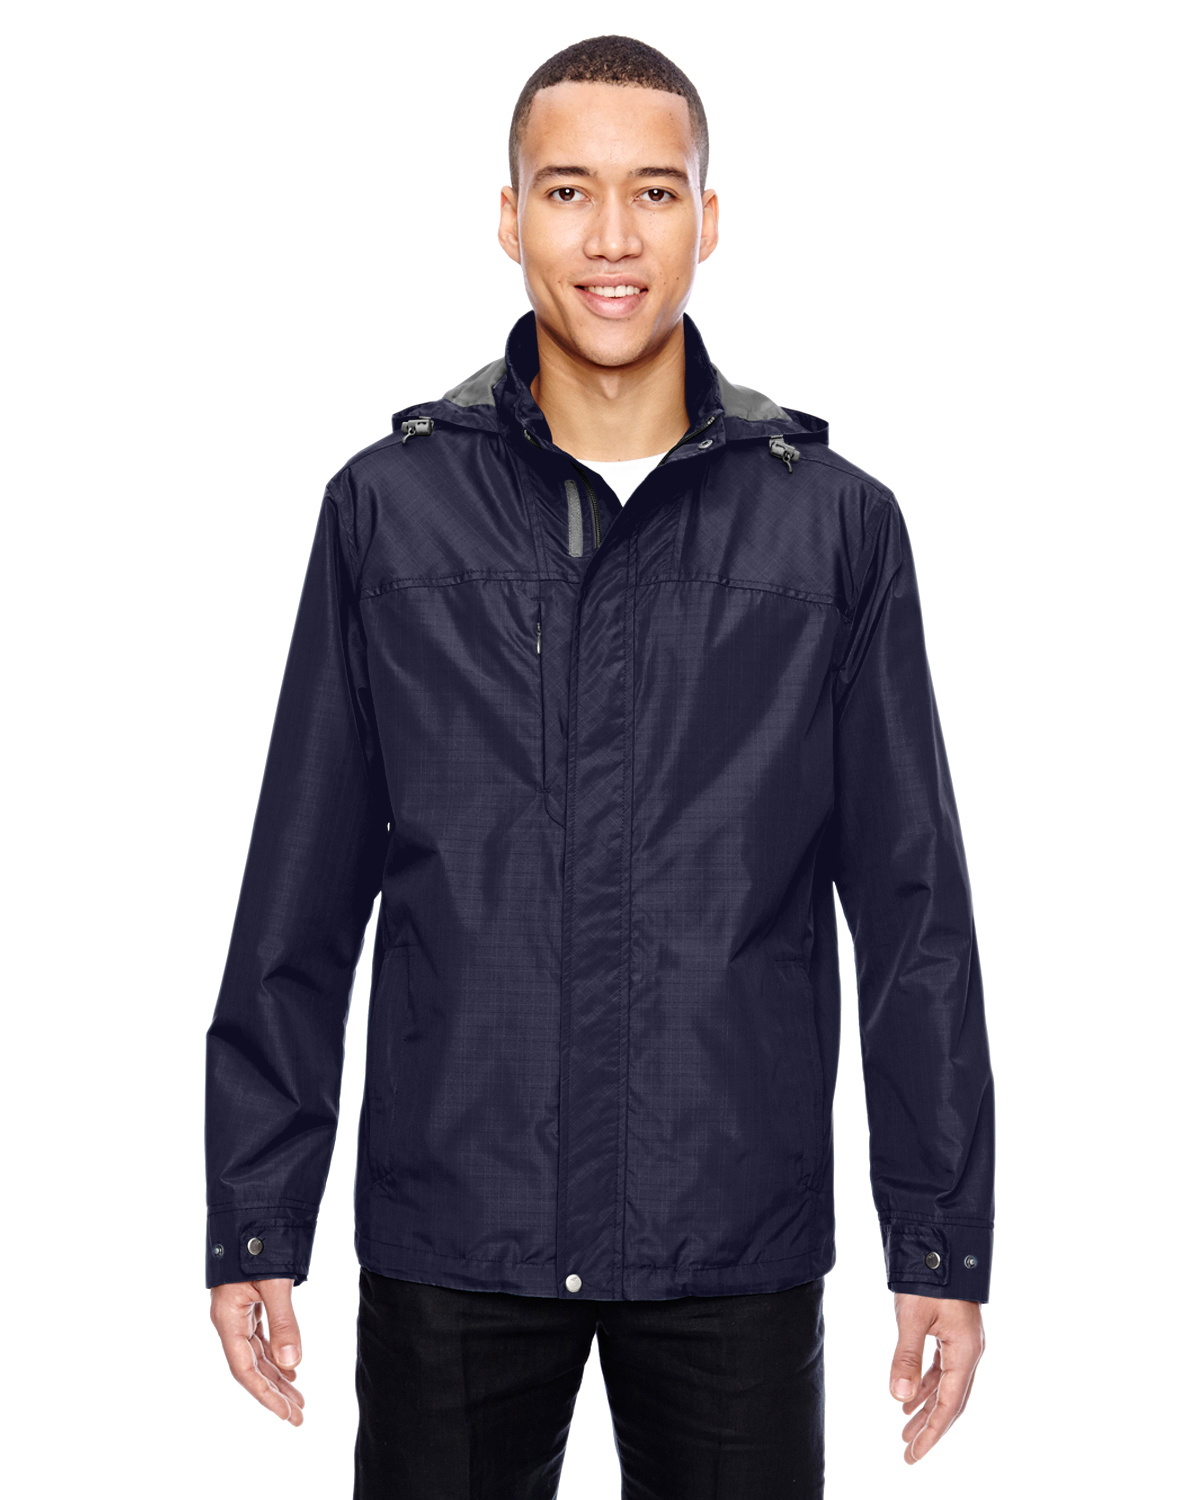 Ash City - 88216, Men's Excursion Transcon Lightweight Jacket with Pattern - Logo Masters International